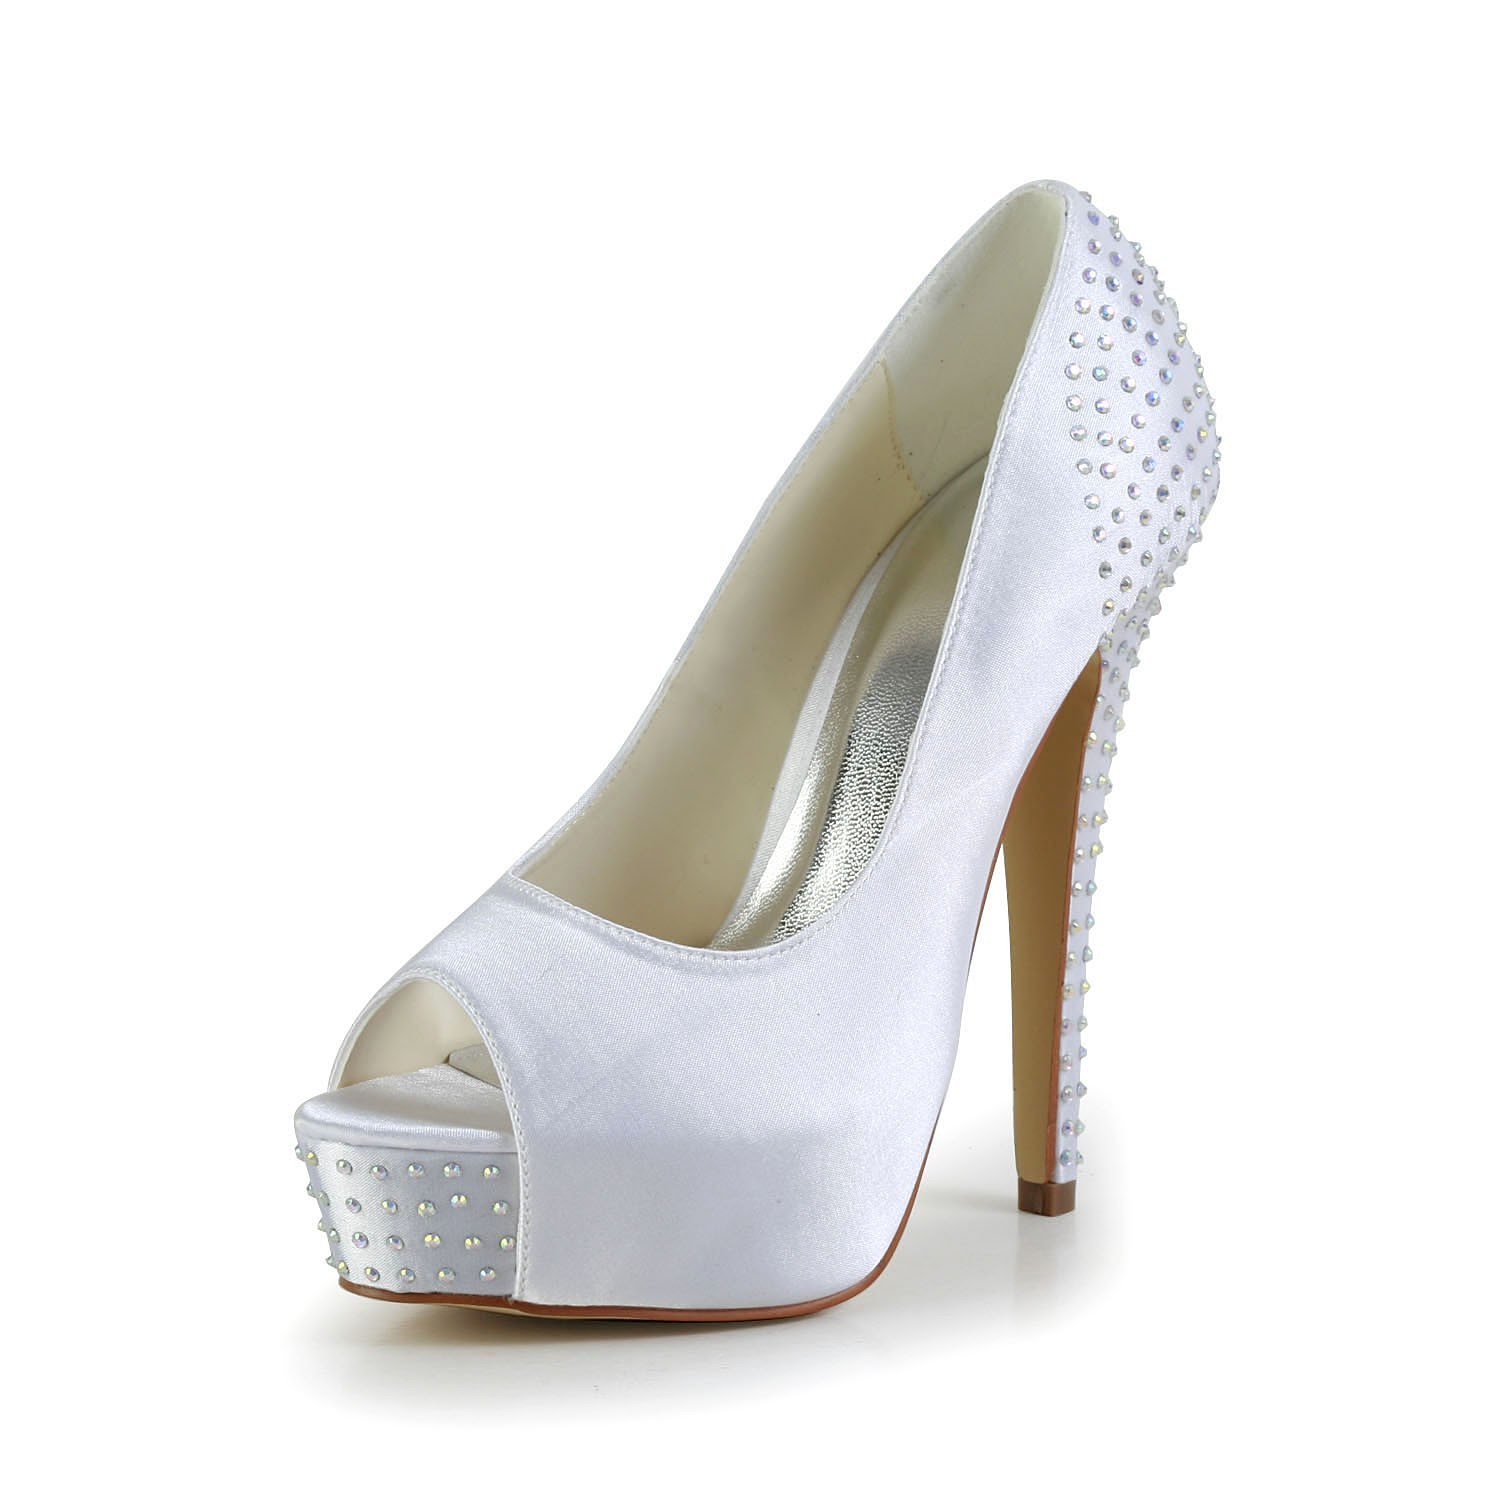 56fa91ac1f25 Women s Satin Stiletto Heel Peep Toe Platform White Wedding Shoes ...